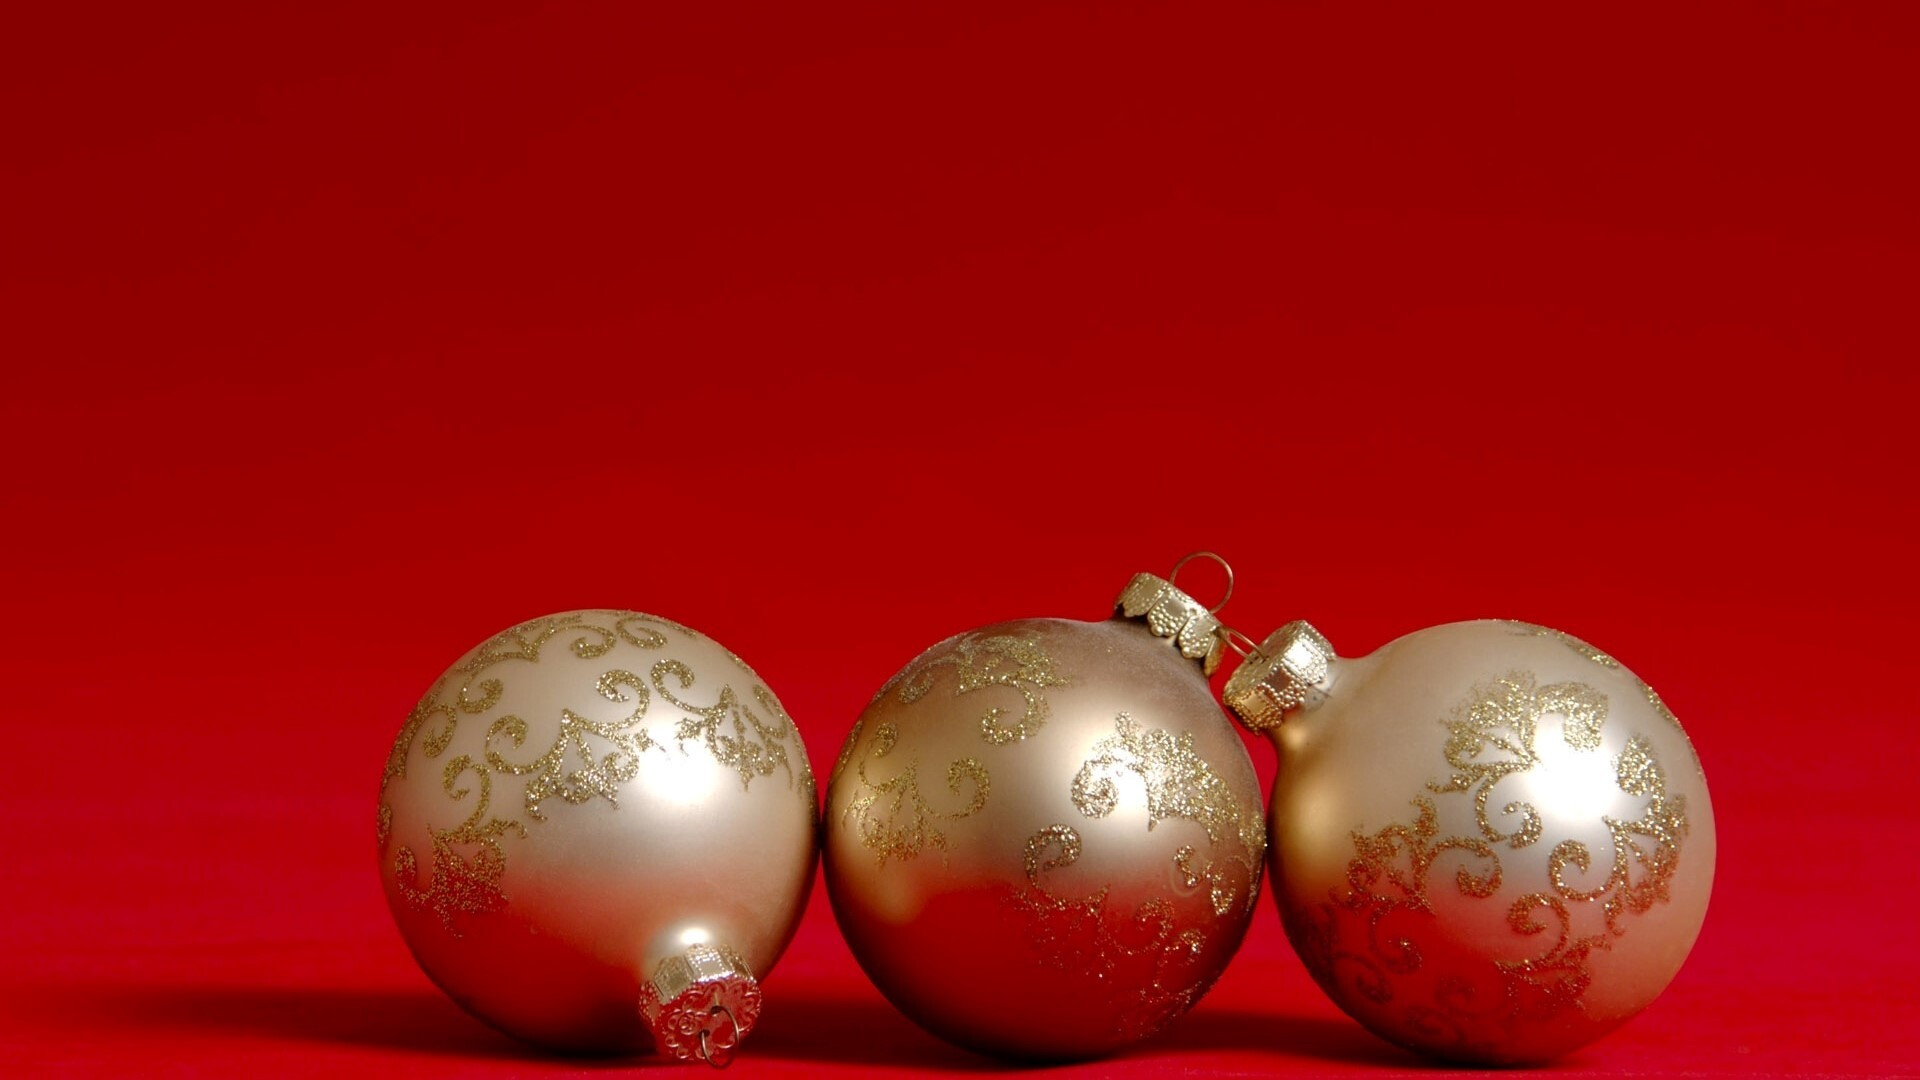 Beautiful Three Christmas Balls With Red Background Free